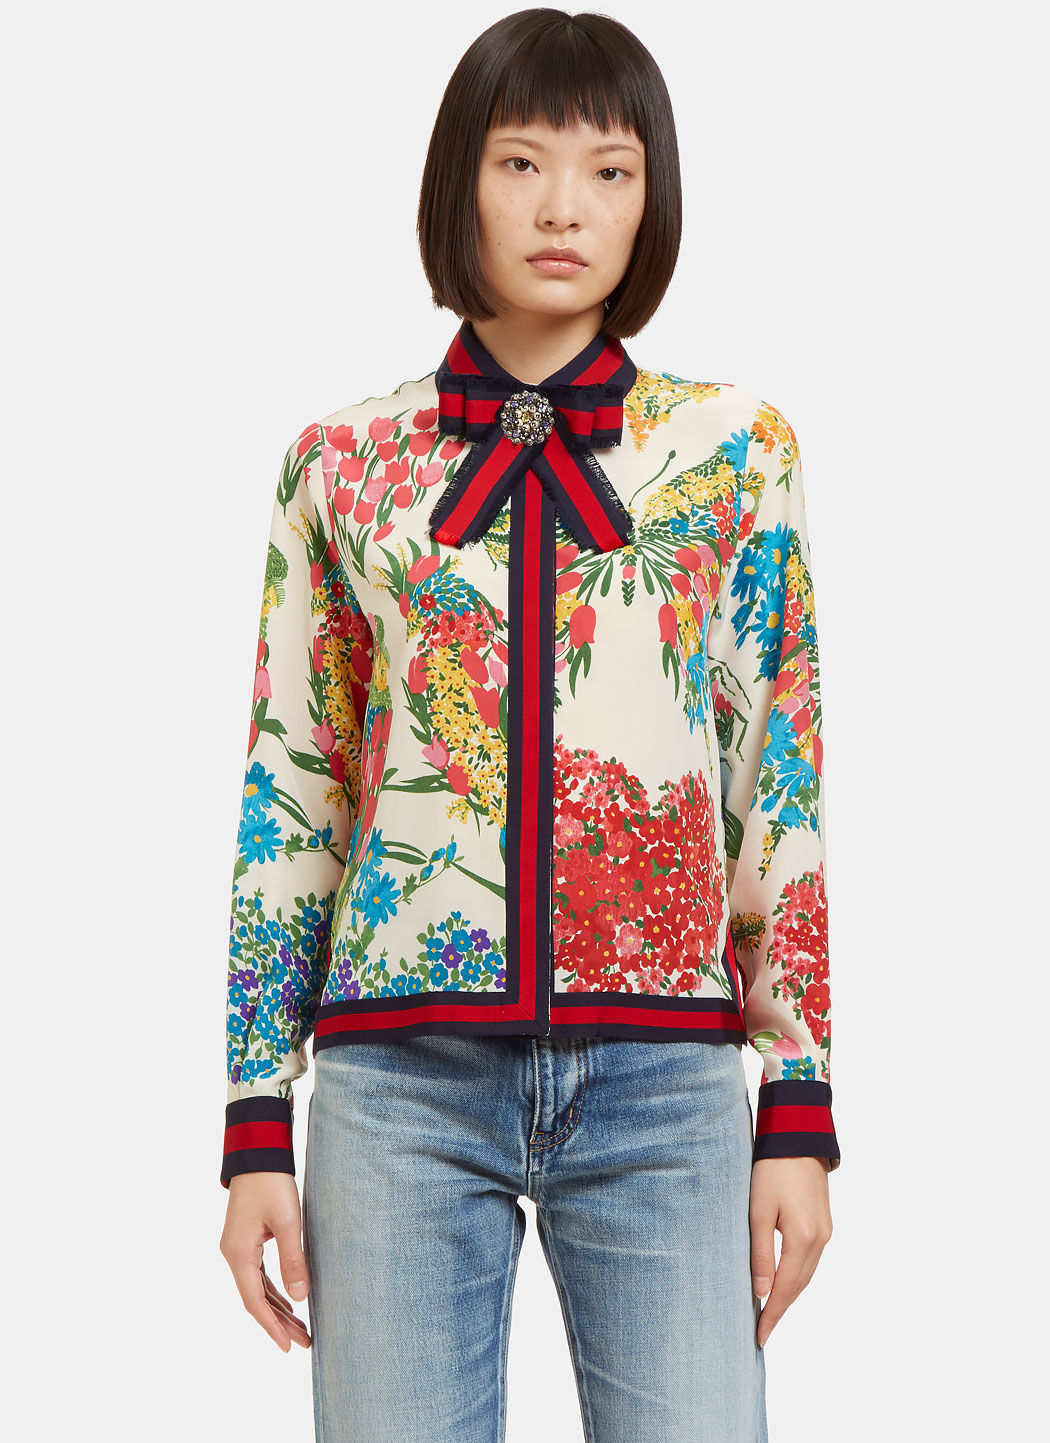 GUCCI Grosgrain-Trimmed Printed Silk Crepe De Chine Blouse in Ivory